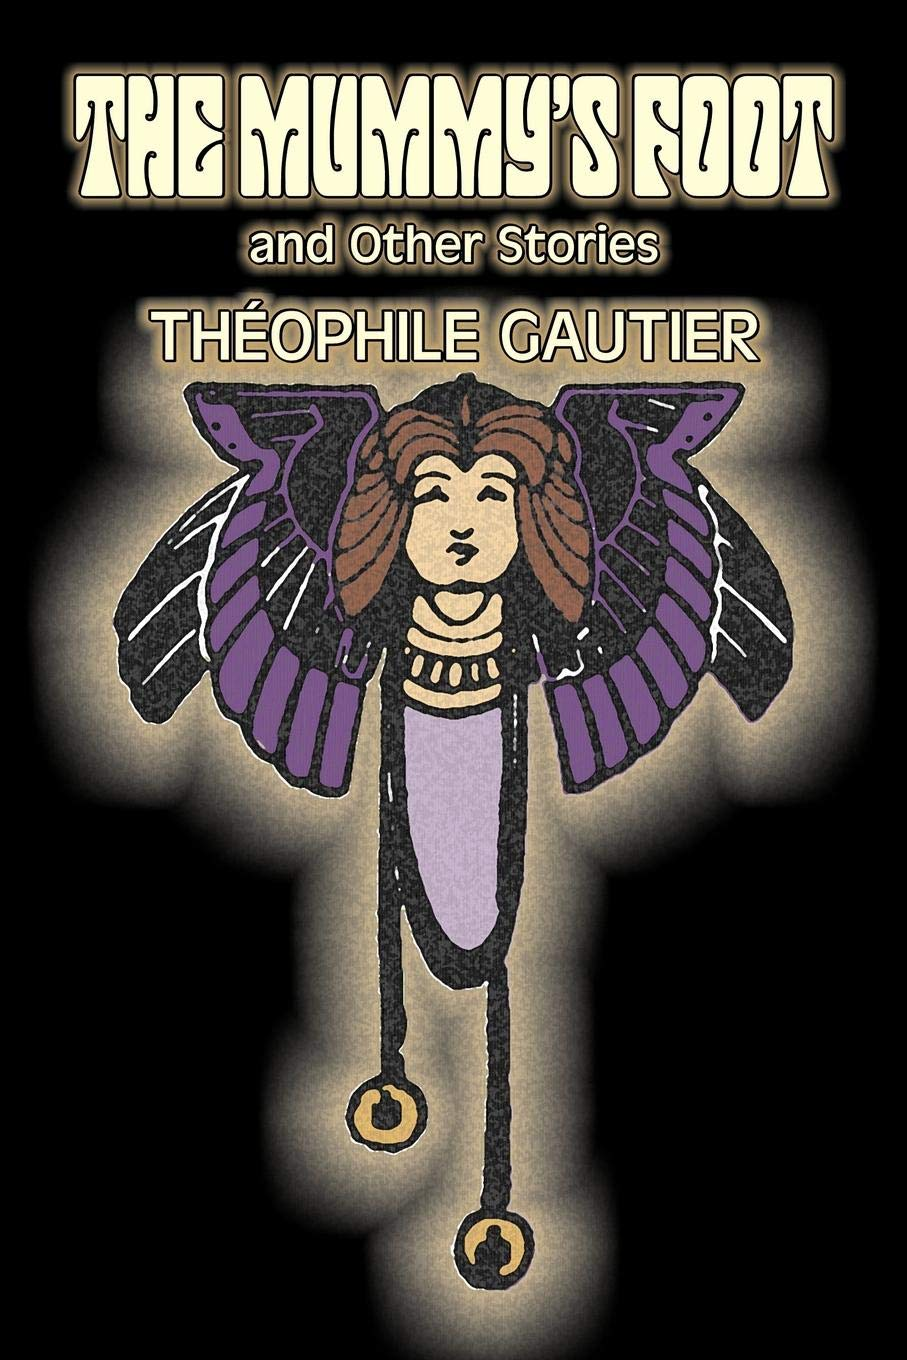 The Mummy's Foot and Other Stories by Theophile Gautier Fiction Classics Fantasy Fairy Tales Folk Tales Legends & Mythology